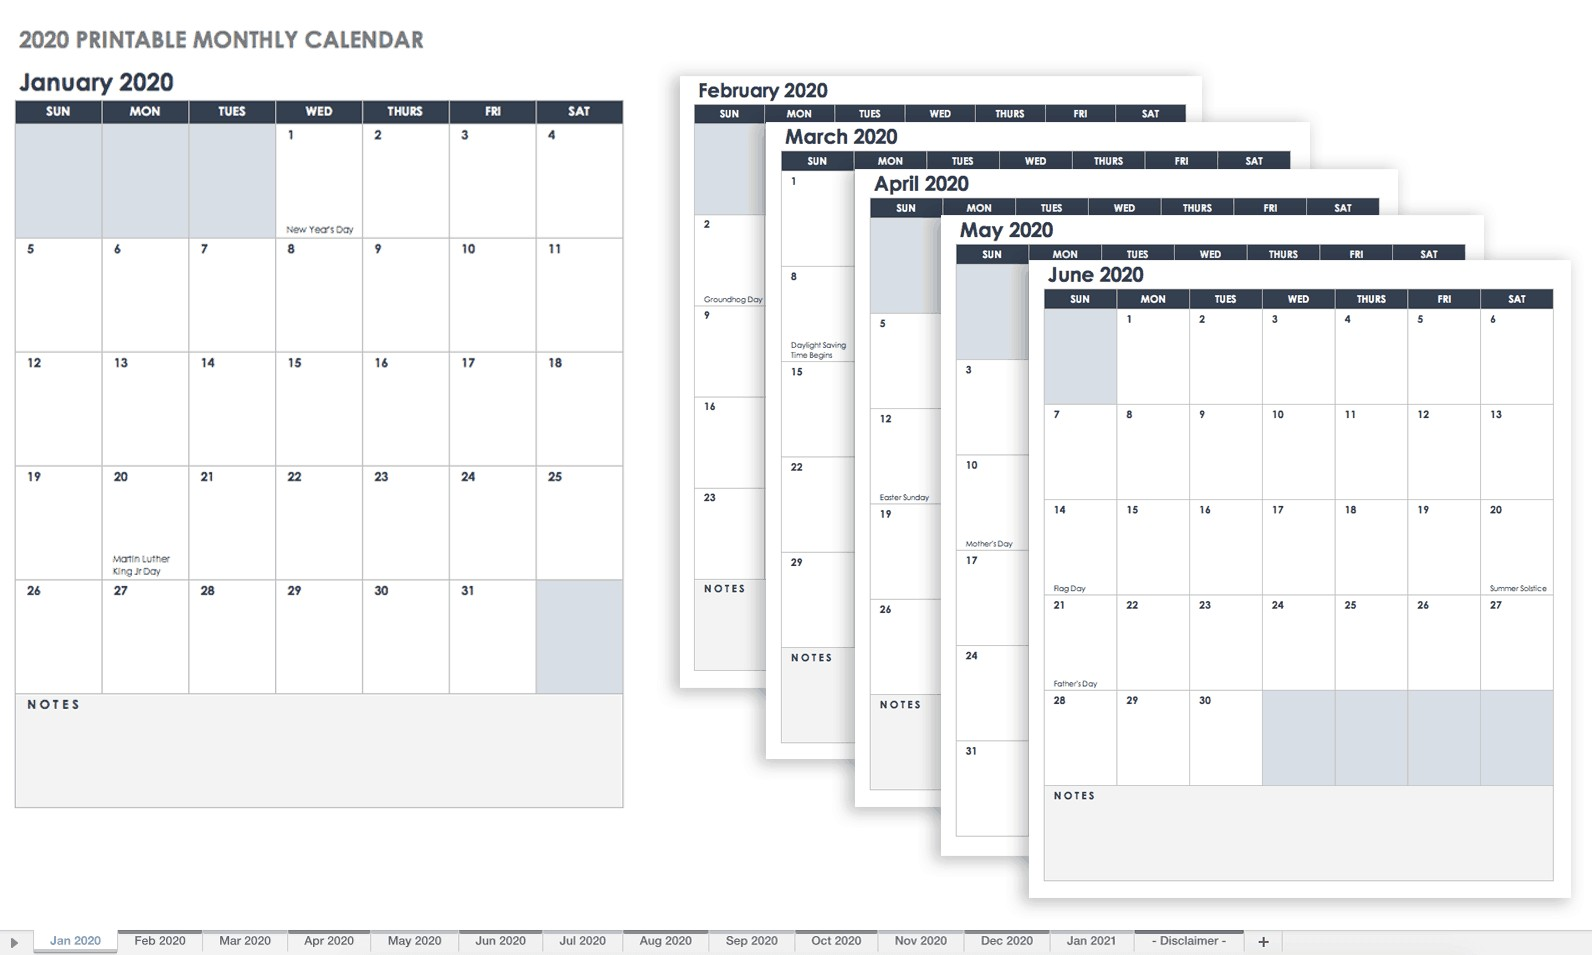 Free Printable 2020 Monthly Calendar with Holidays 15 Free Monthly Calendar Templates